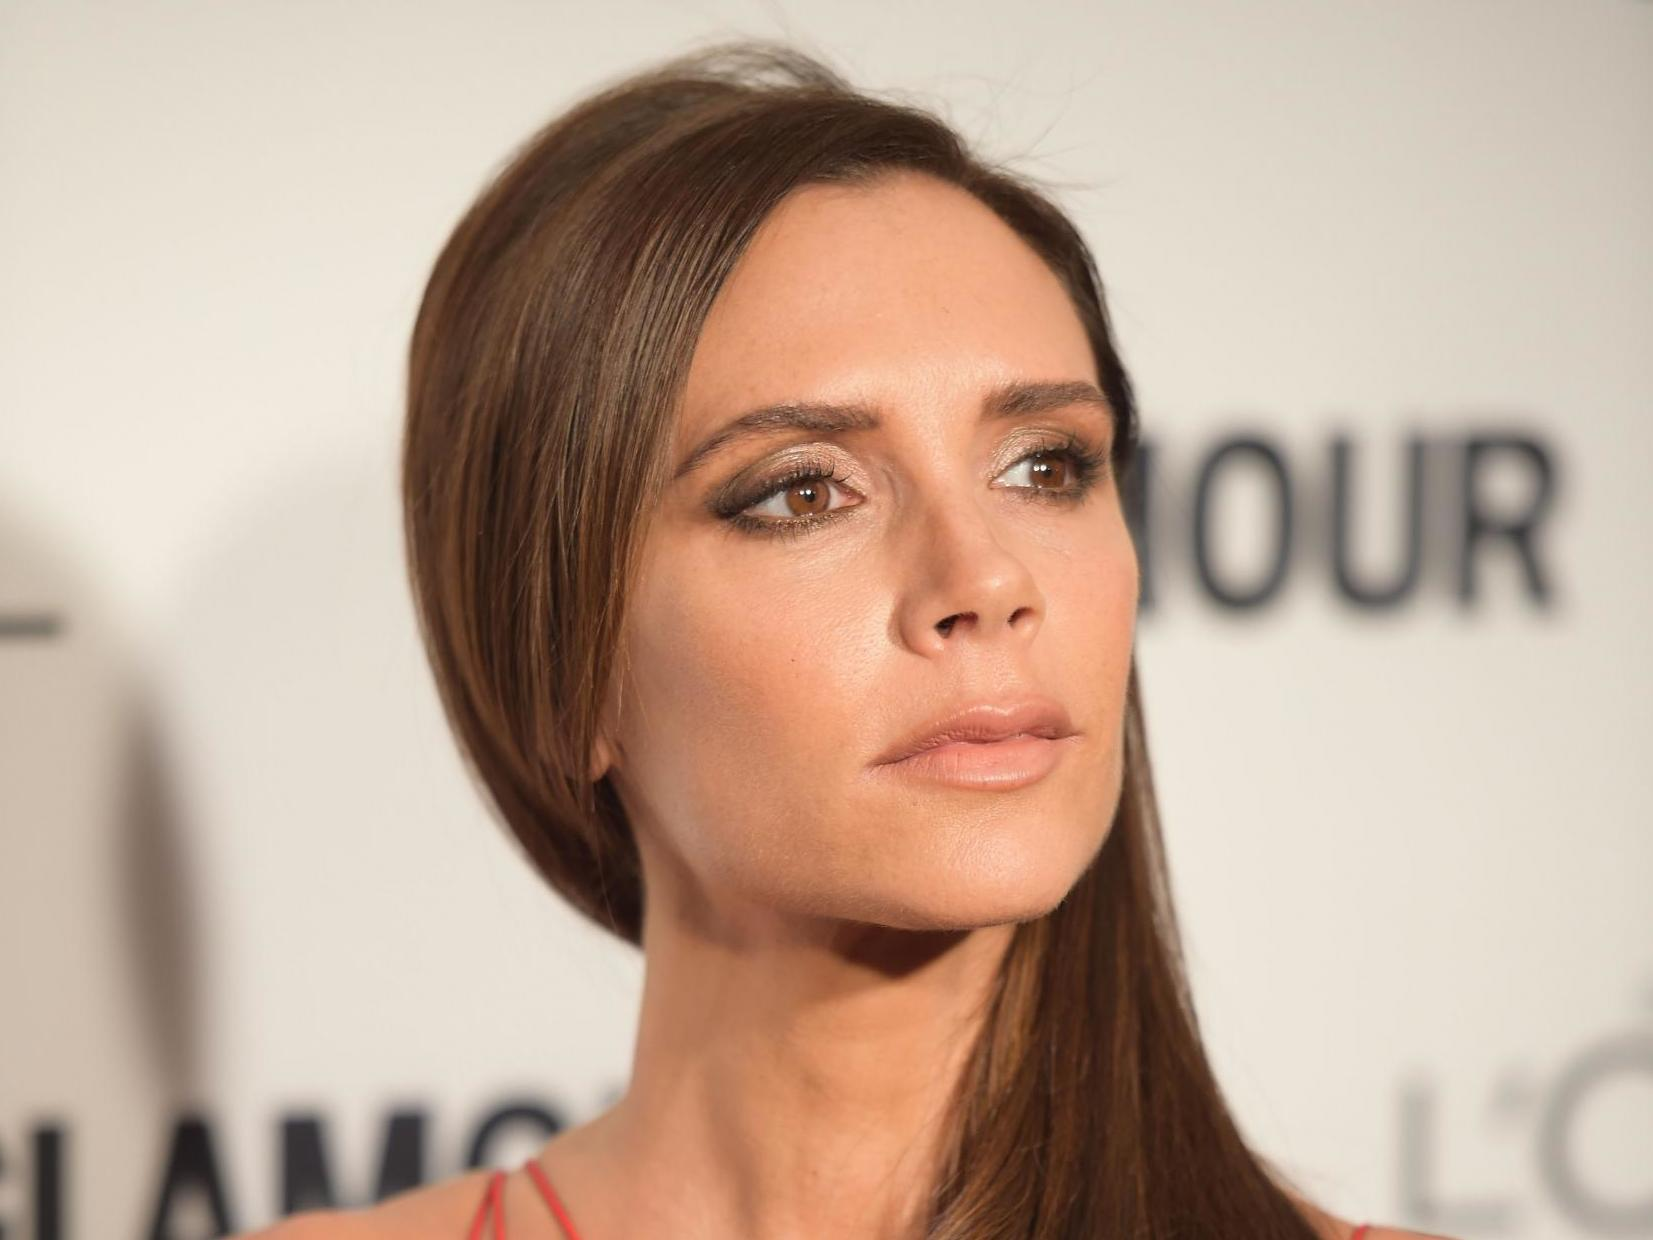 Victoria Beckham Shares Sneak Peek Of Upcoming Beauty Line The Independent The Independent